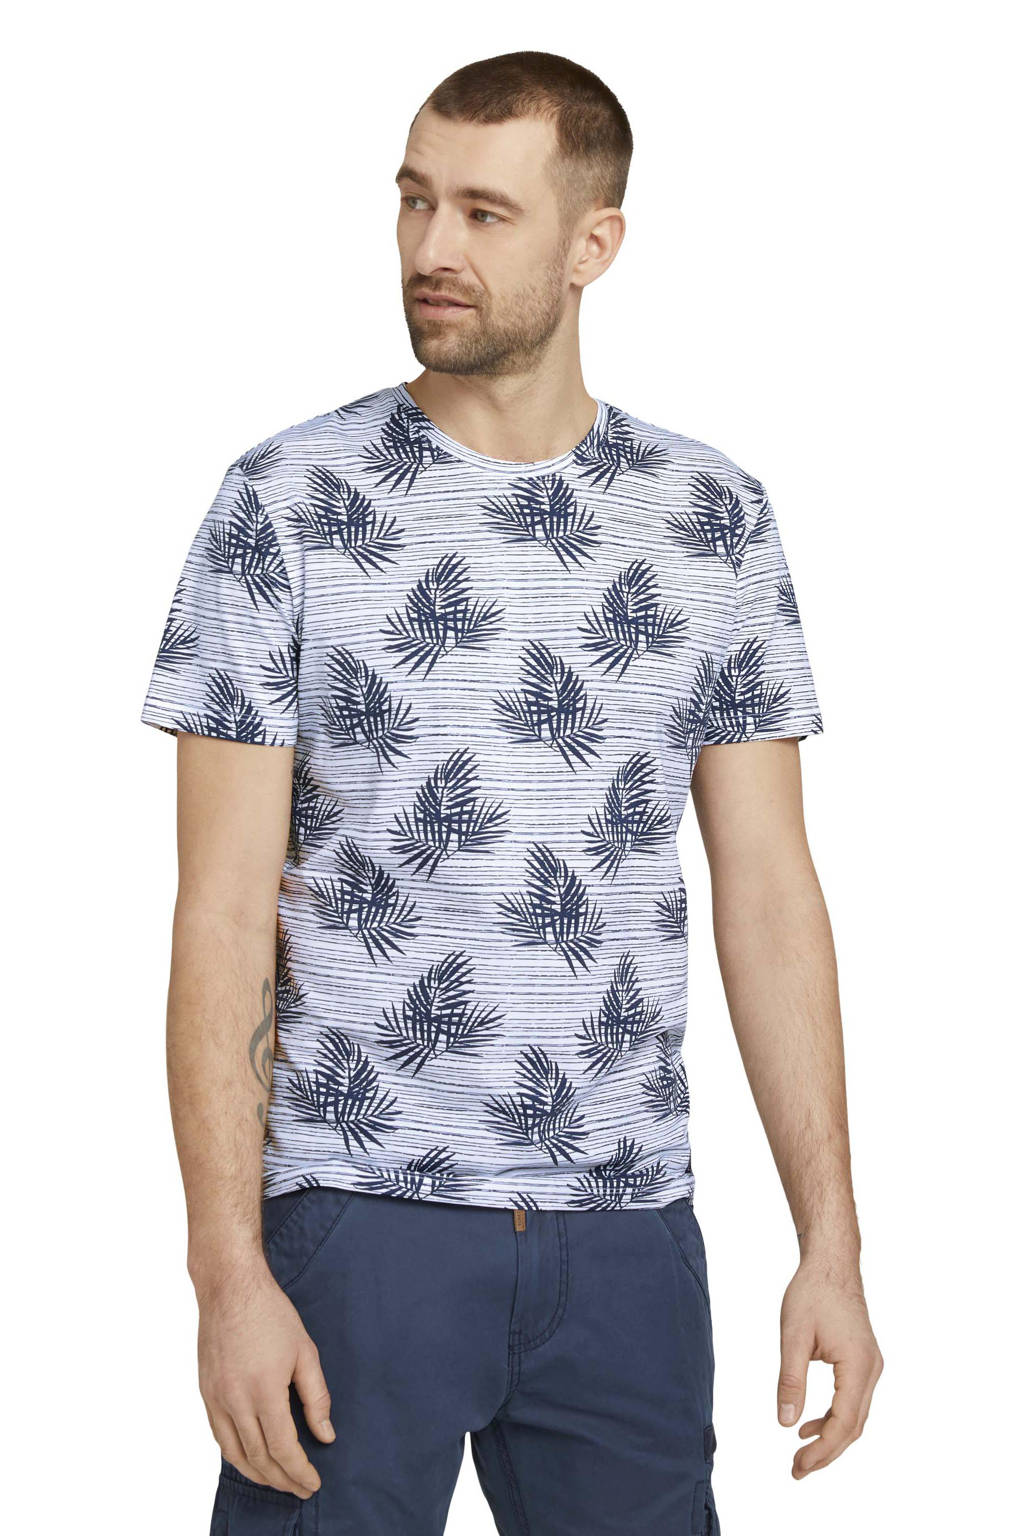 Tom Tailor T-shirt met all over print donkerblauw/wit, Donkerblauw/wit